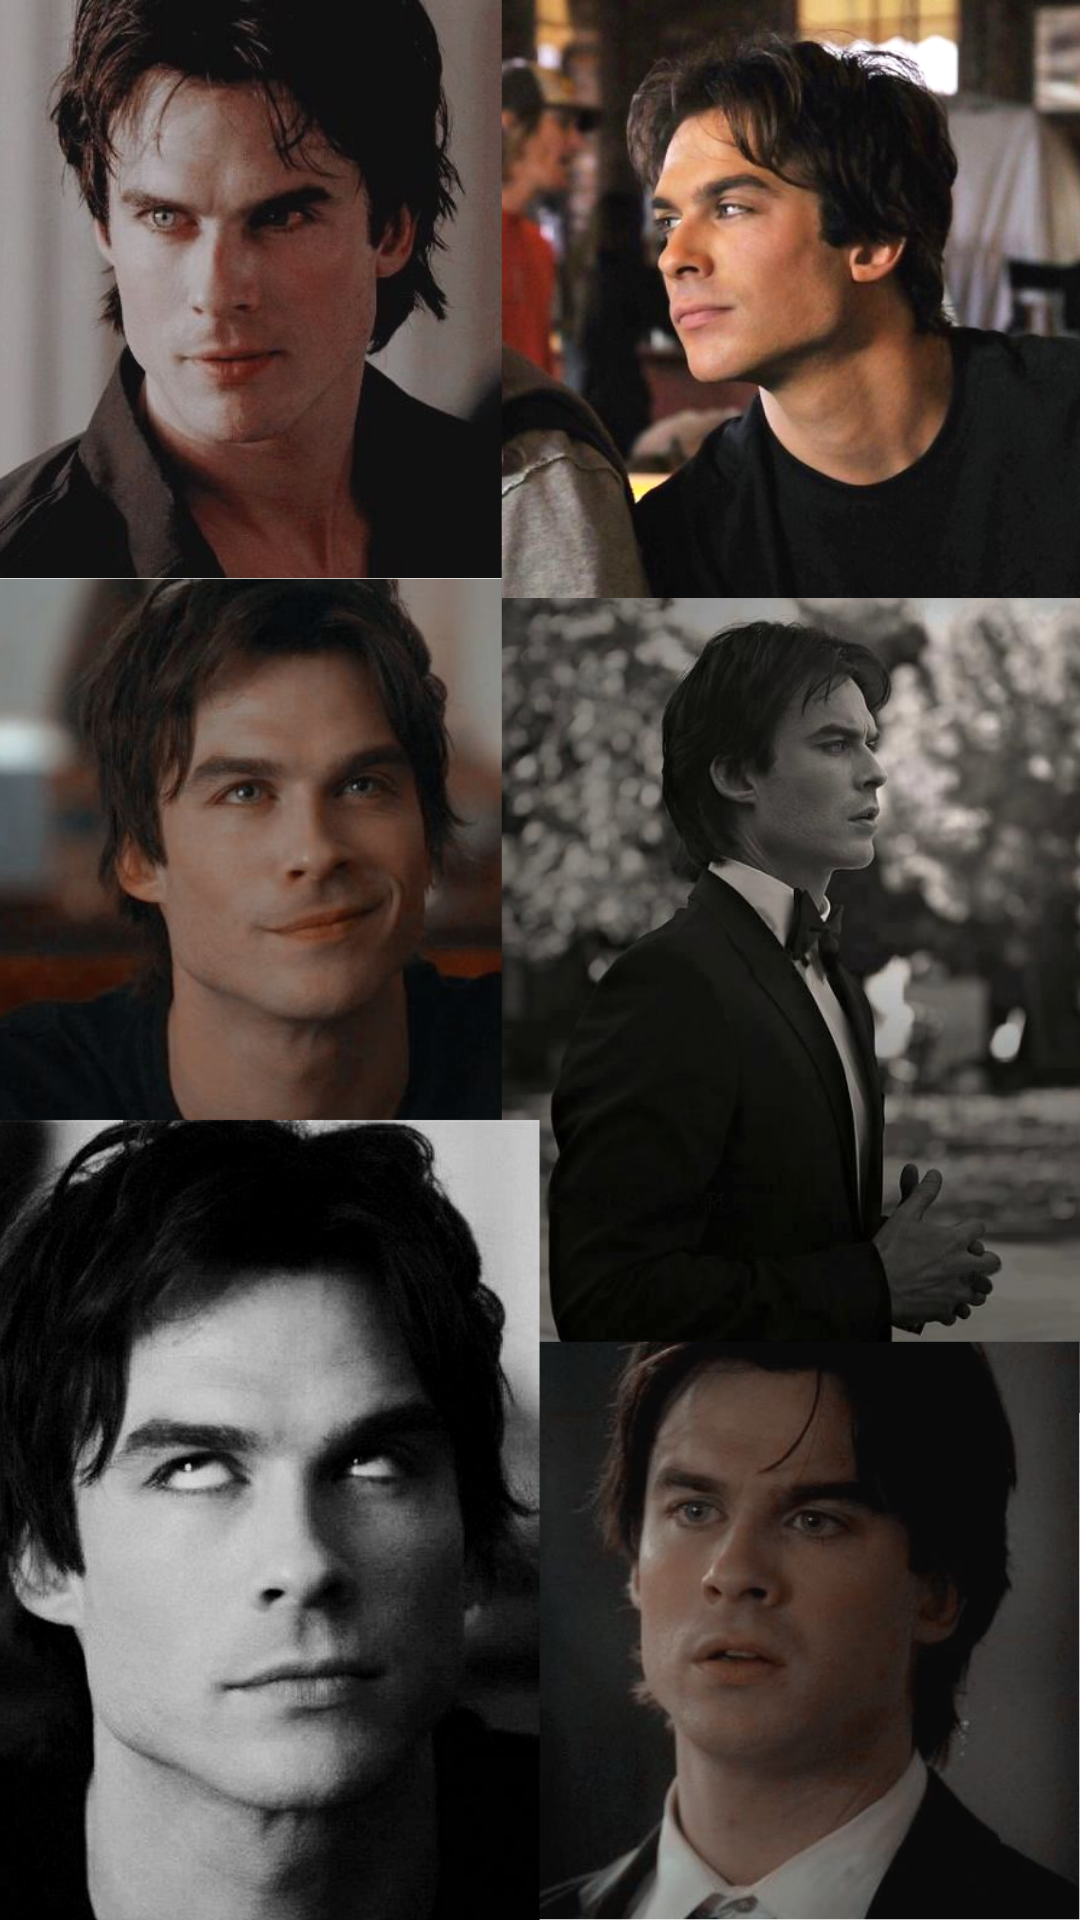 Ian Somerhalder Aesthetic Wallpaper In 2020 Vampire Diaries Damon Ian Somerhalder Vampire Diaries Damon Salvatore Vampire Diaries